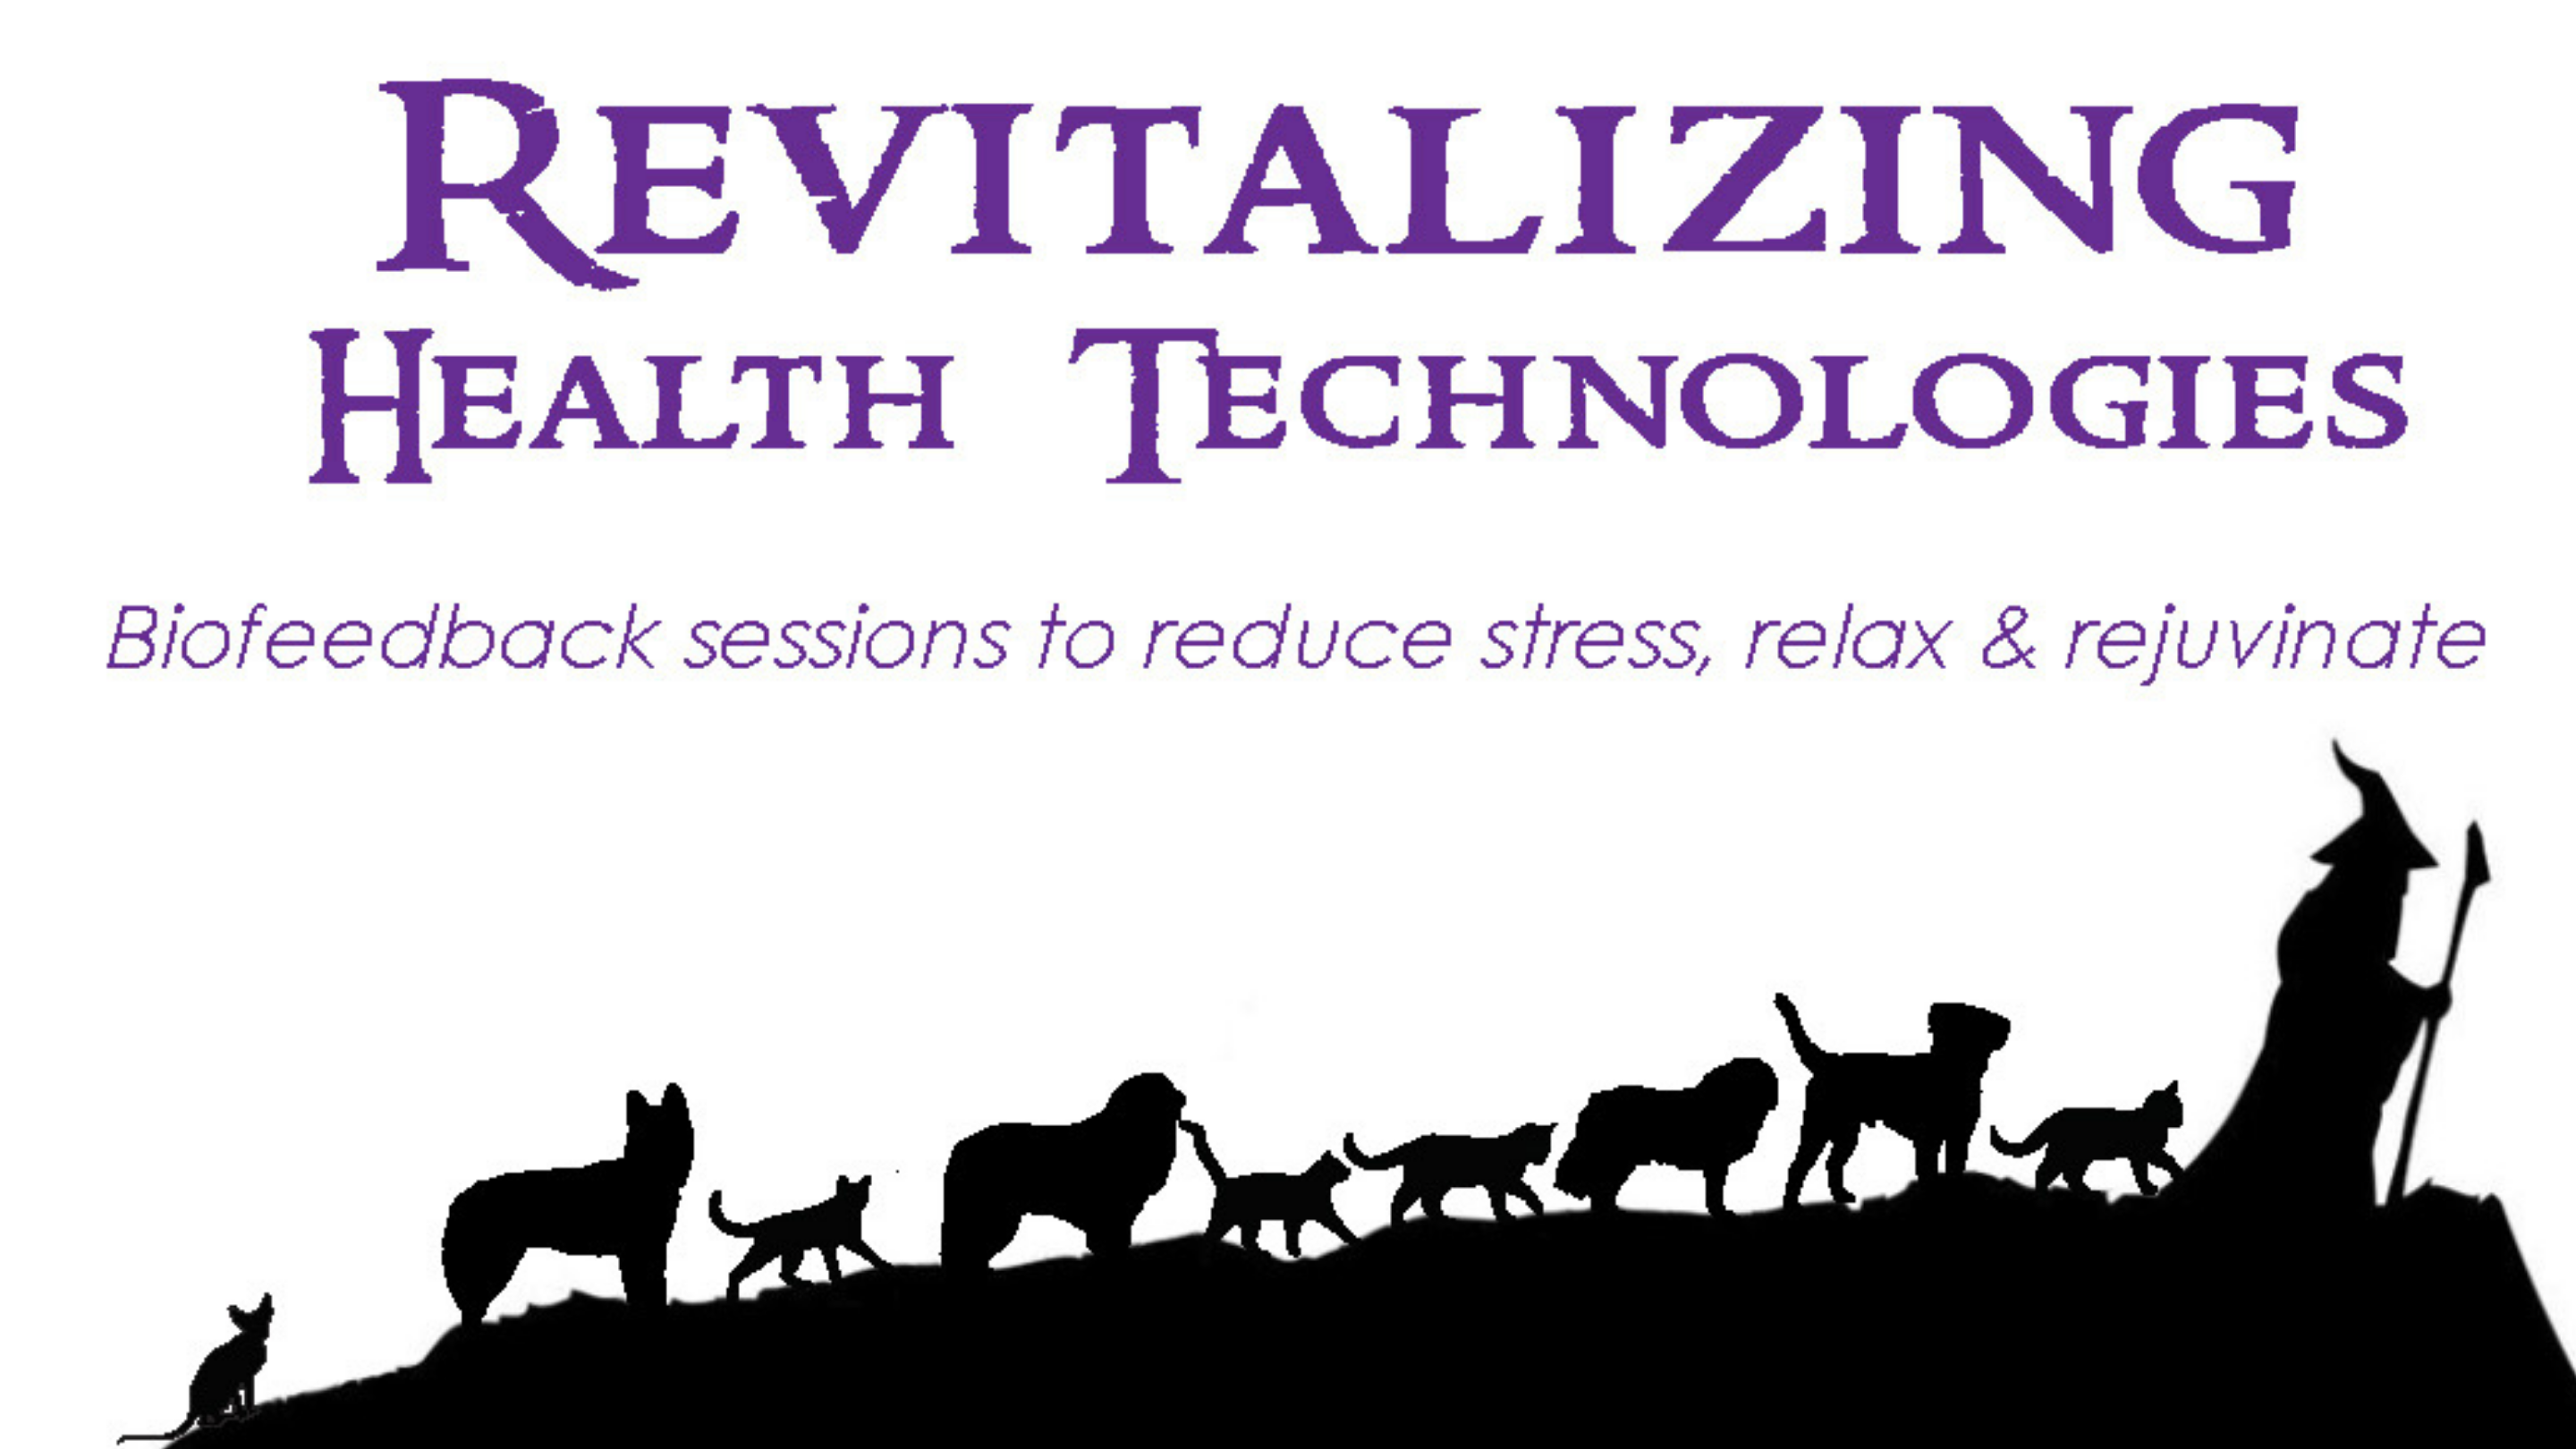 Revitalizing Health Technologies